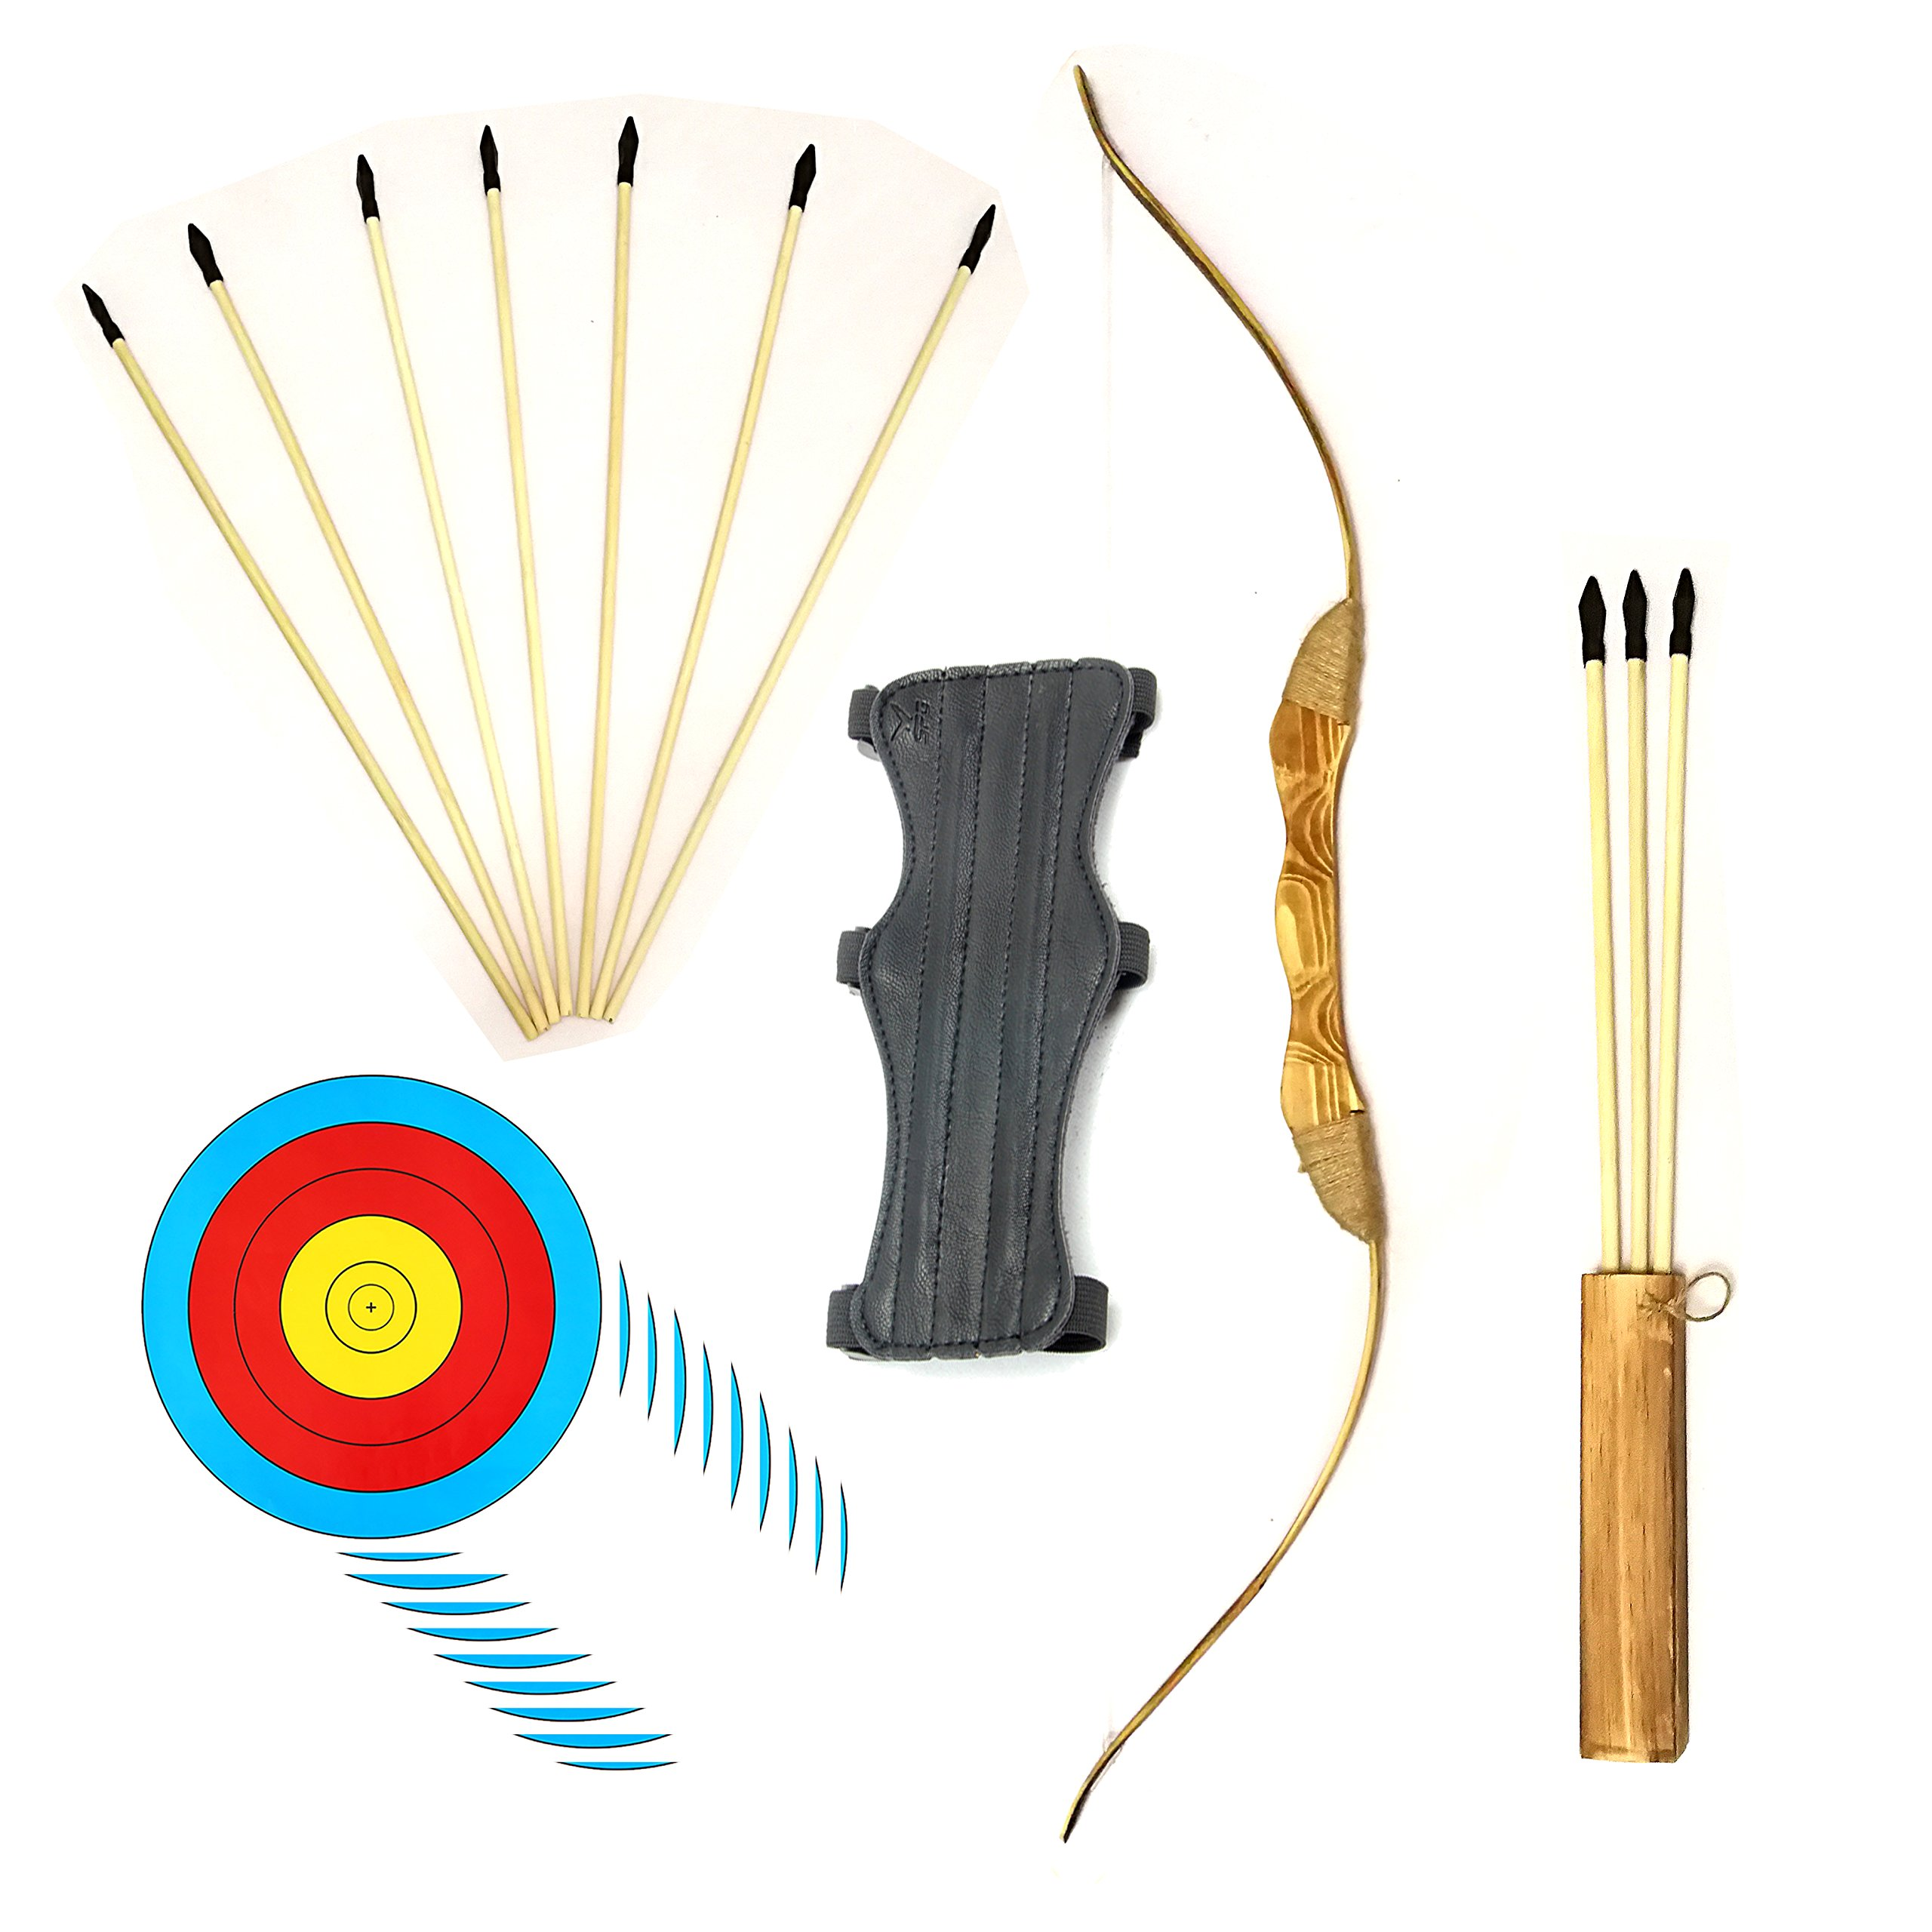 Wooden Bow and Arrow Set with 4 Bullseye Target Sheets and Arm Guard 10 Safe Rubber Tip Arrows and Quiver Most Extensive Archery Set for Kids Youth and Beginners (17 PCS)